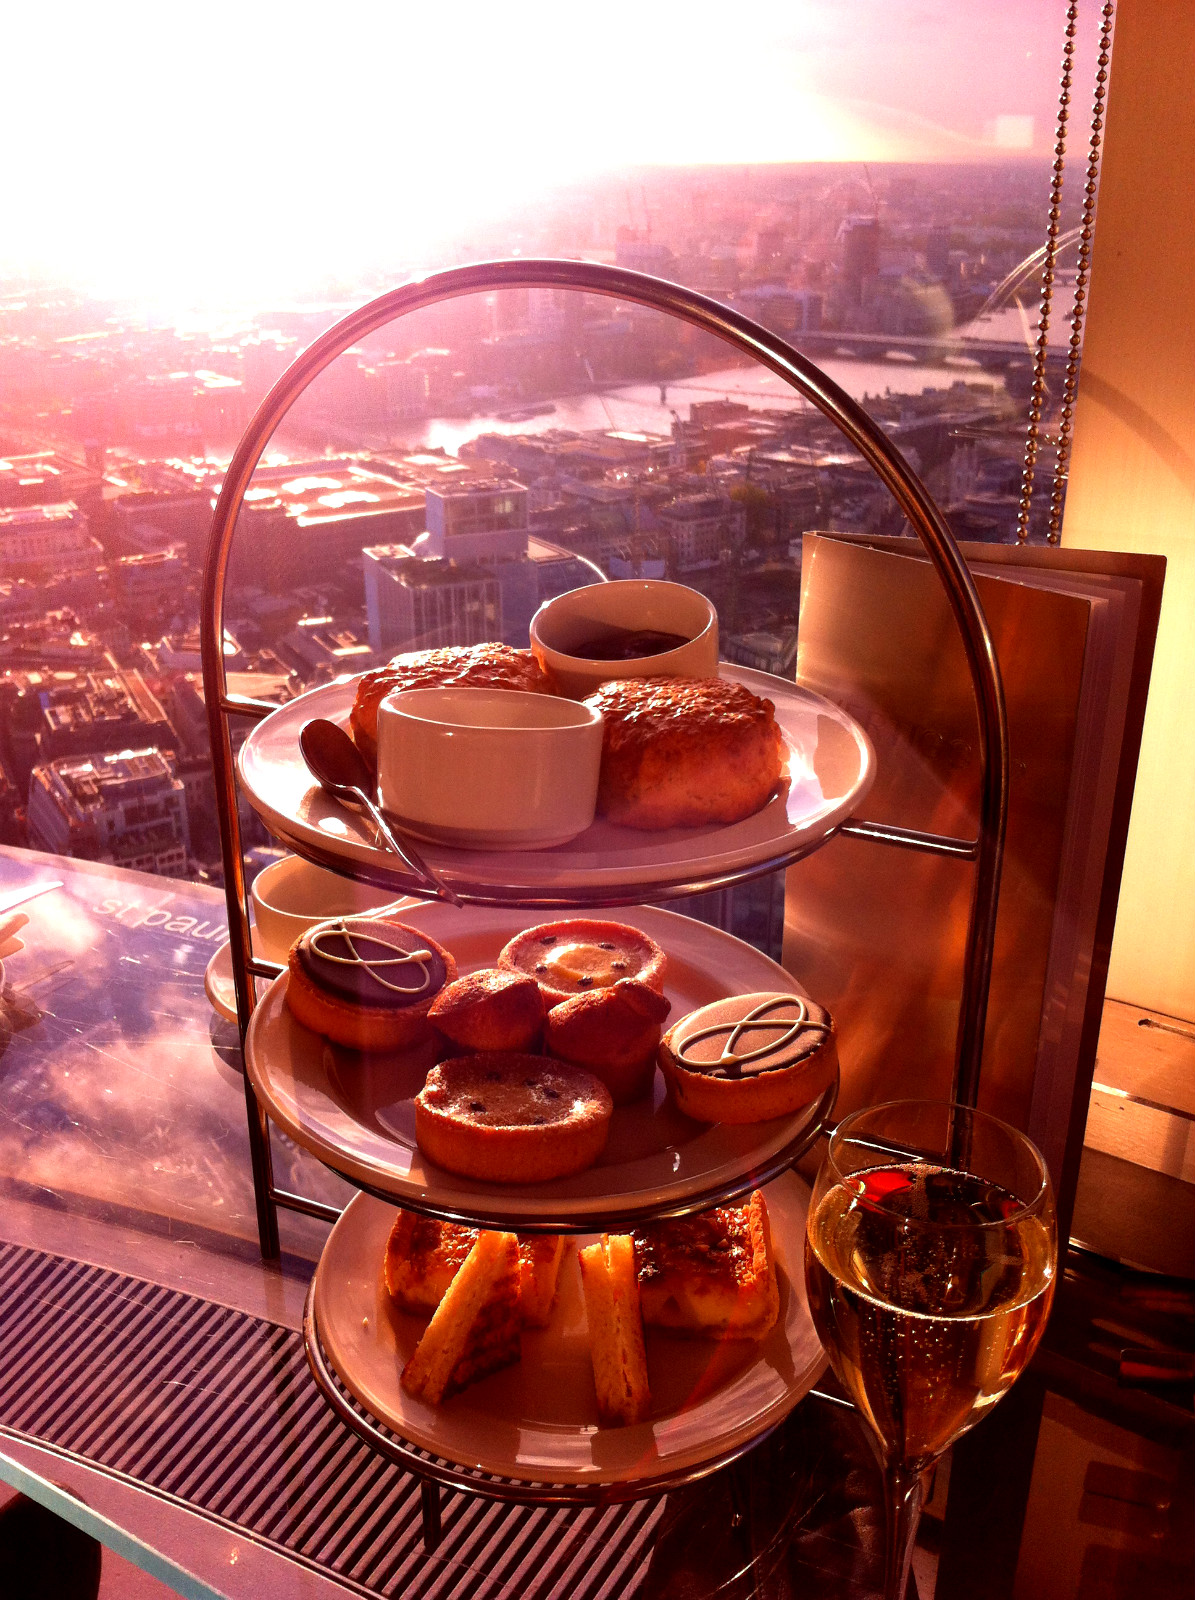 And I could never give up Afternoon Tea...